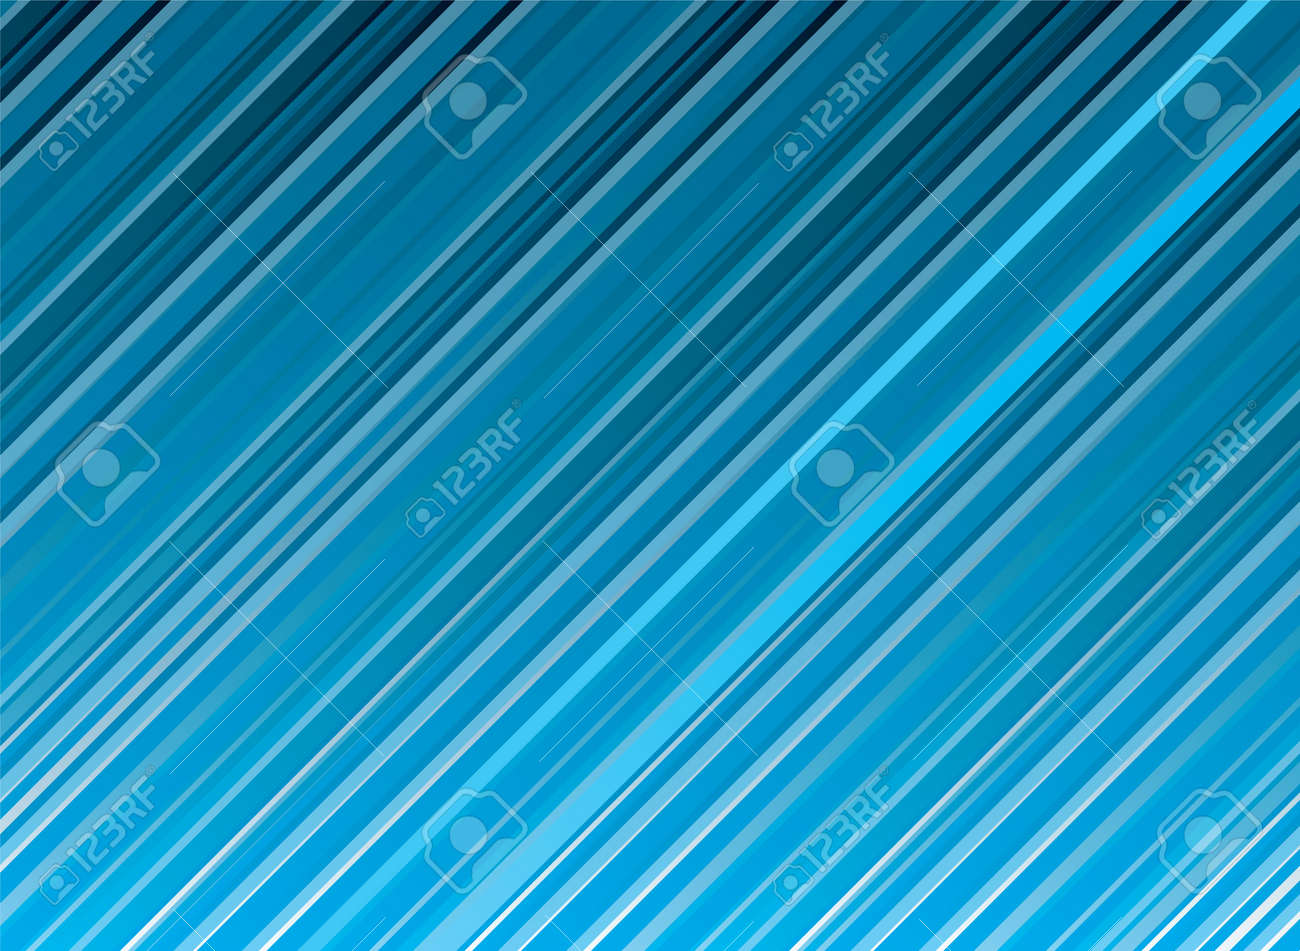 Illustrated abstract background with blue diagnal stripes with copy space Stock Vector - 2378760